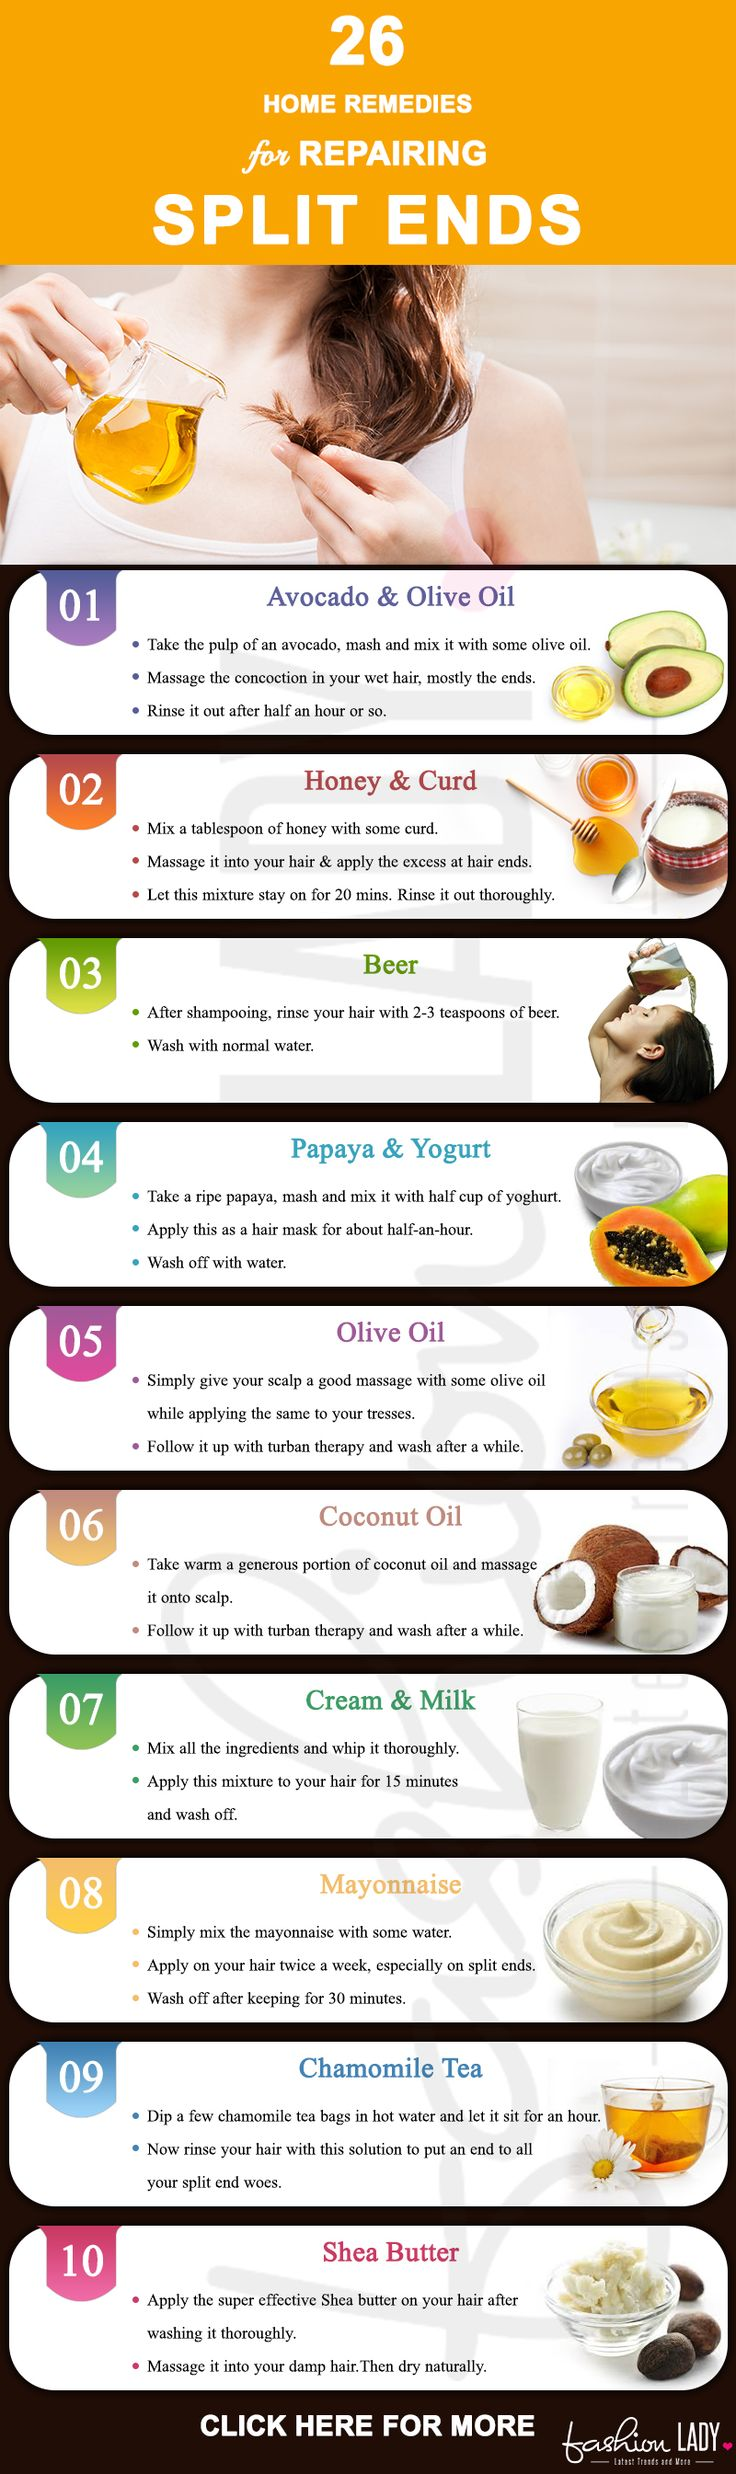 26 Home Remedies For Repairing Split Ends